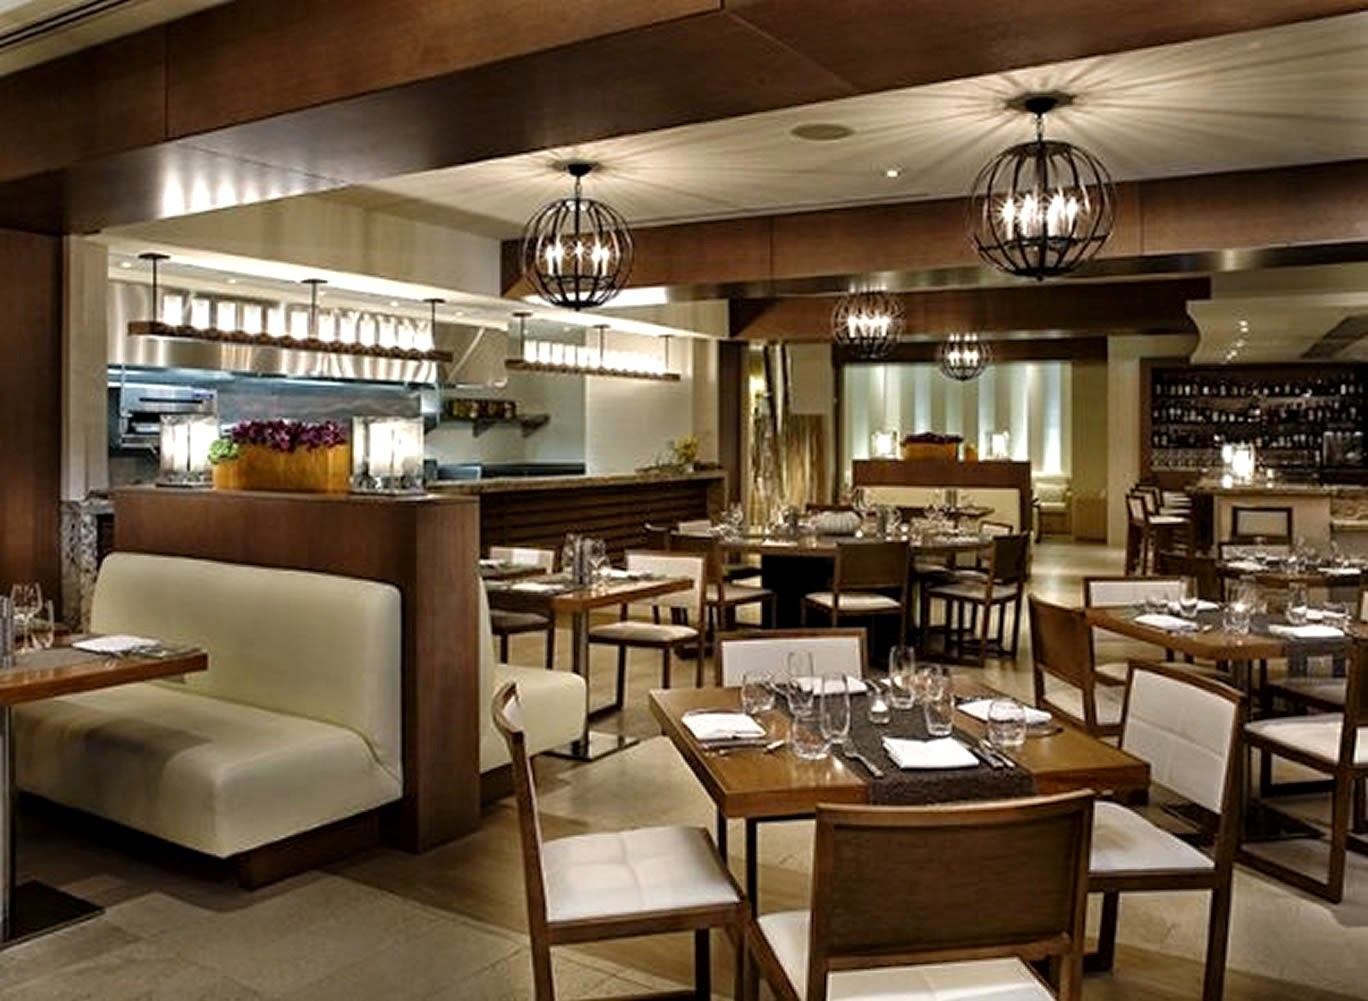 Interior design kitchen restaurant